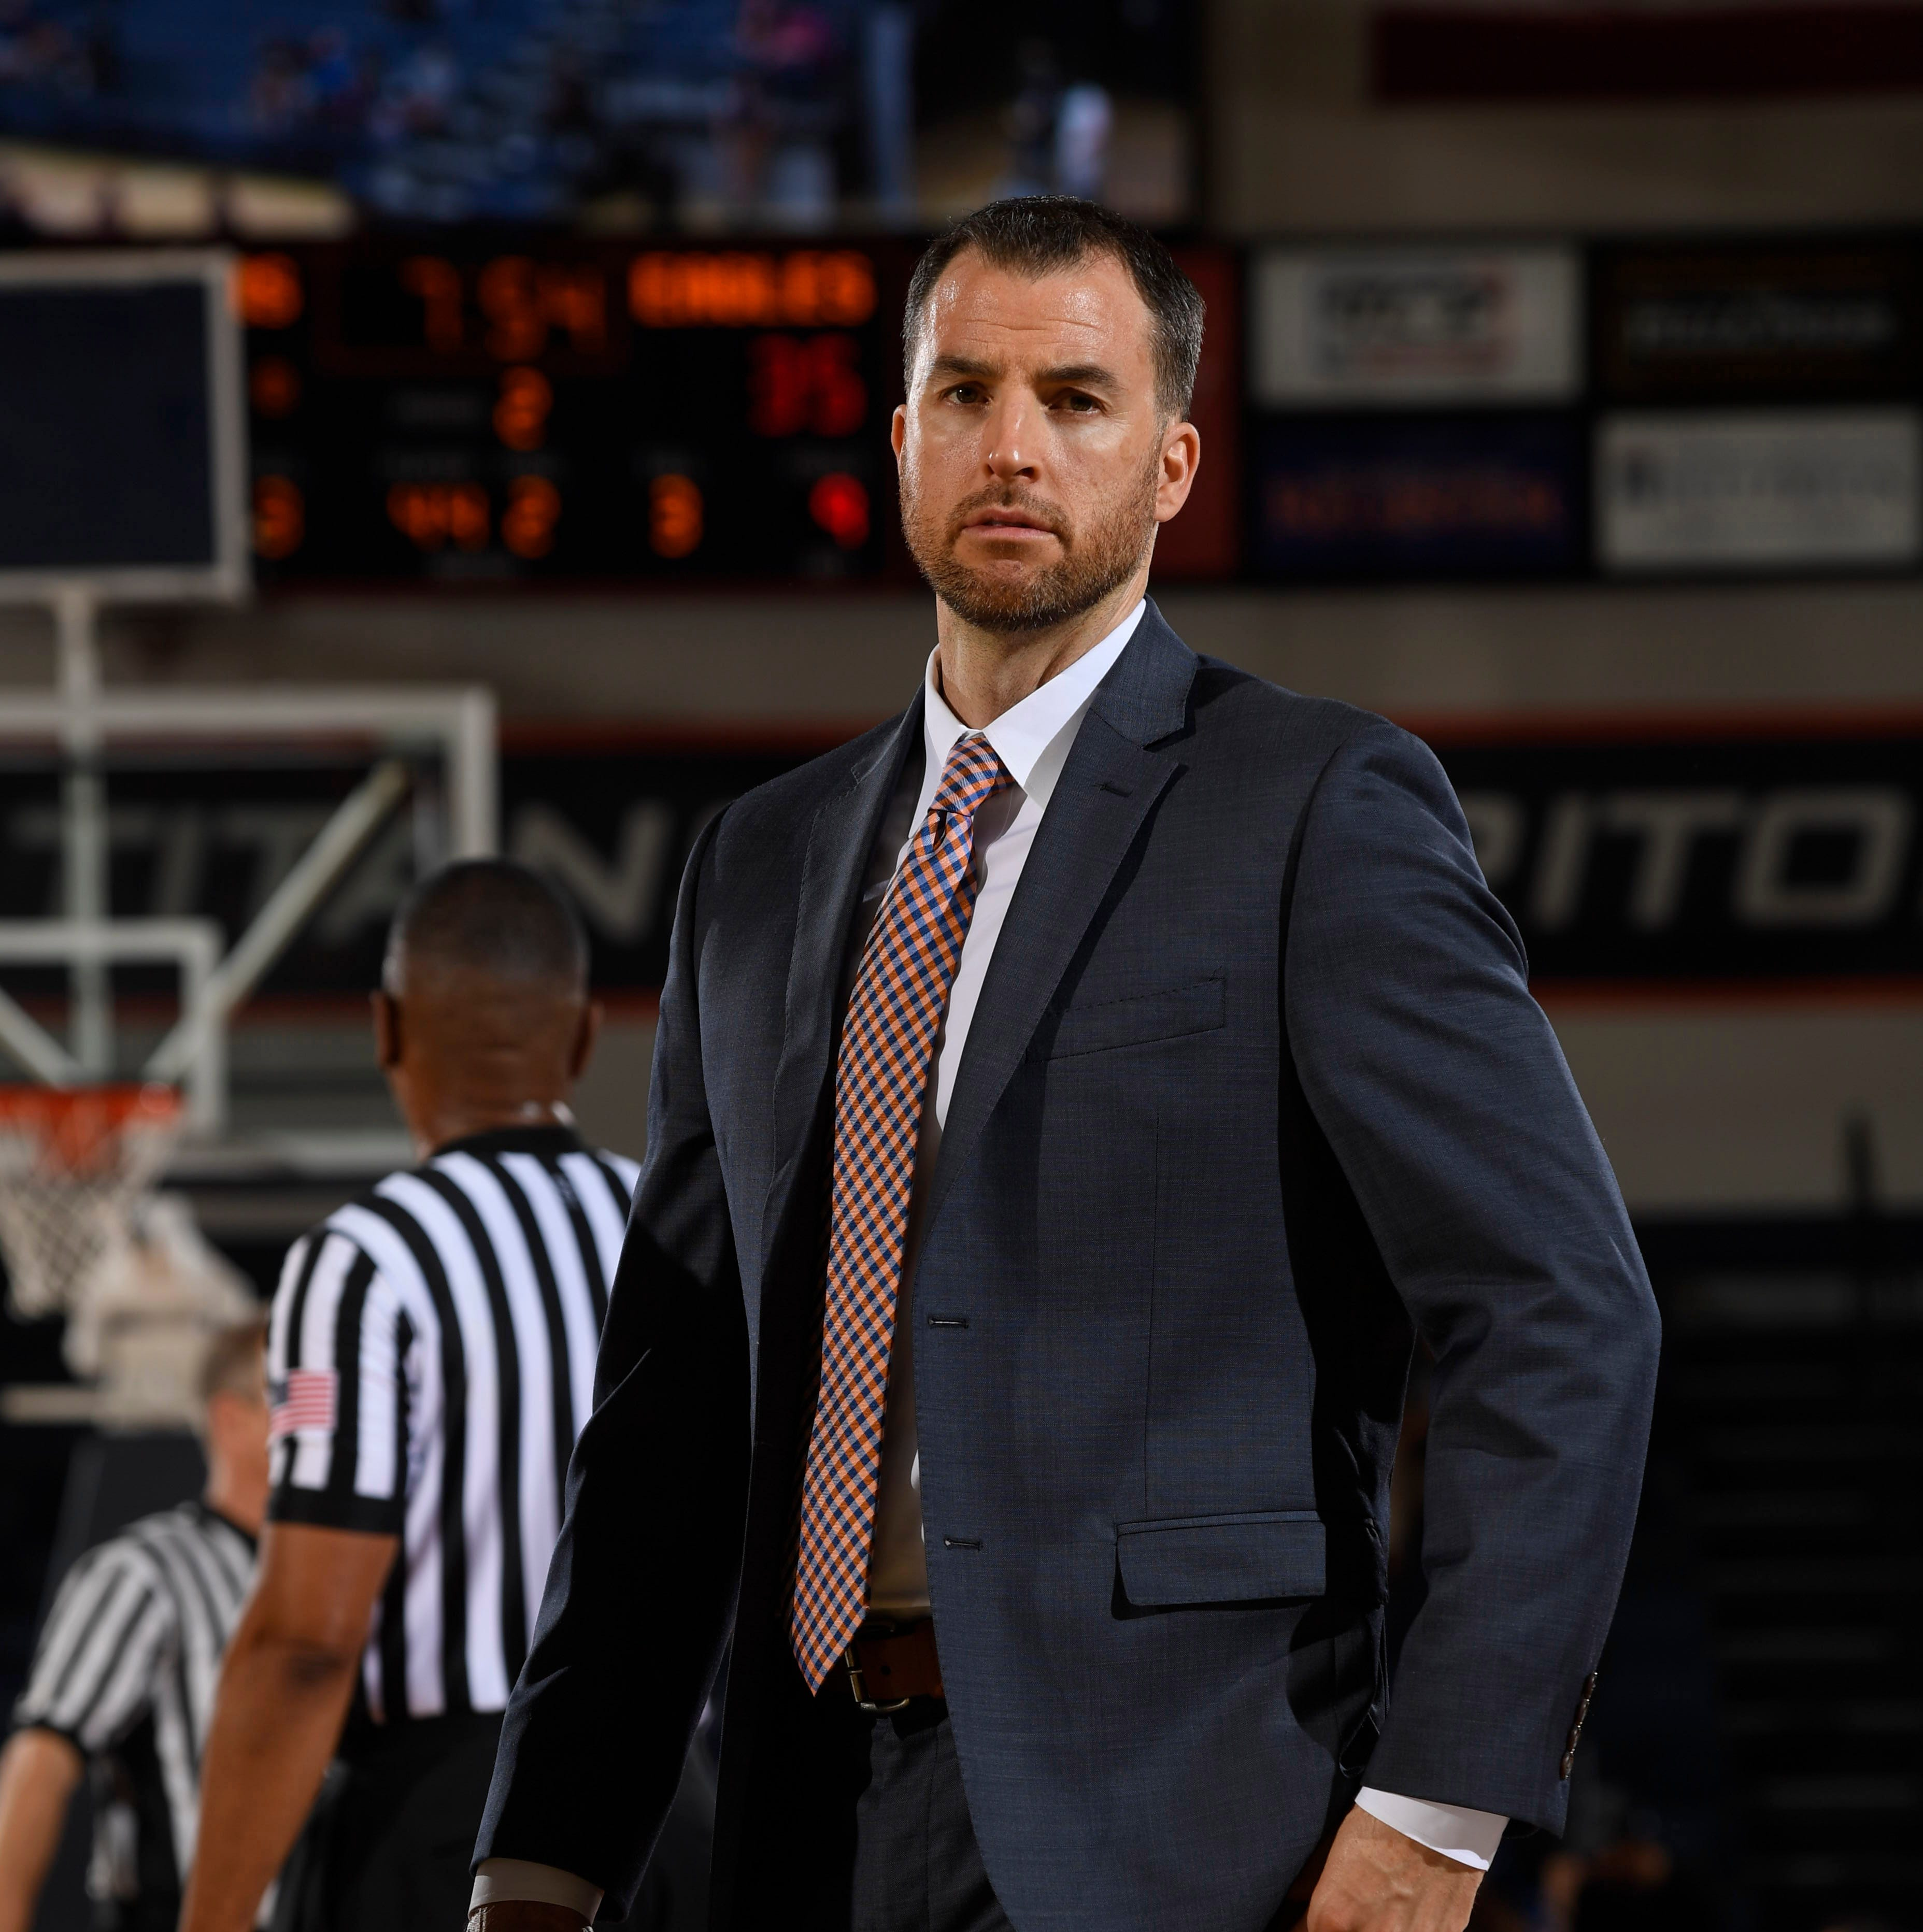 Updated: Sprinkle named new Bobcat men's basketball coach